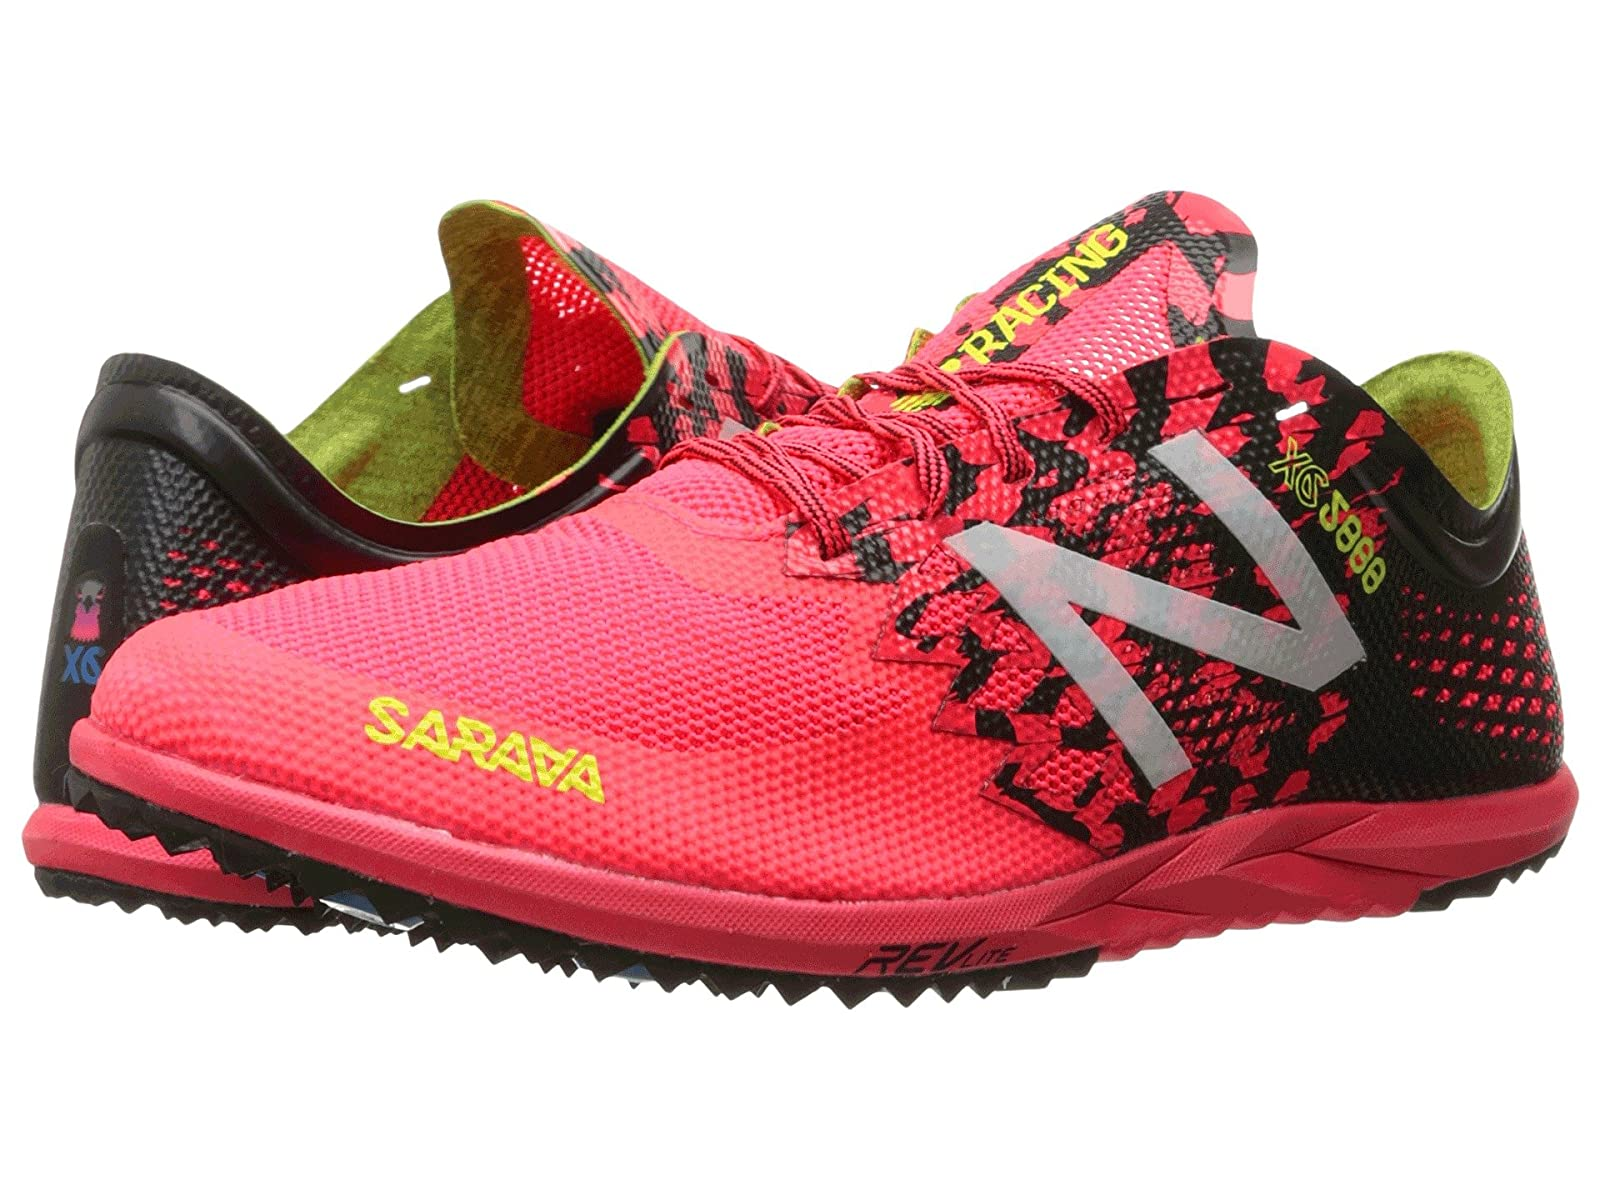 New Balance MXC5000v3Cheap and distinctive eye-catching shoes